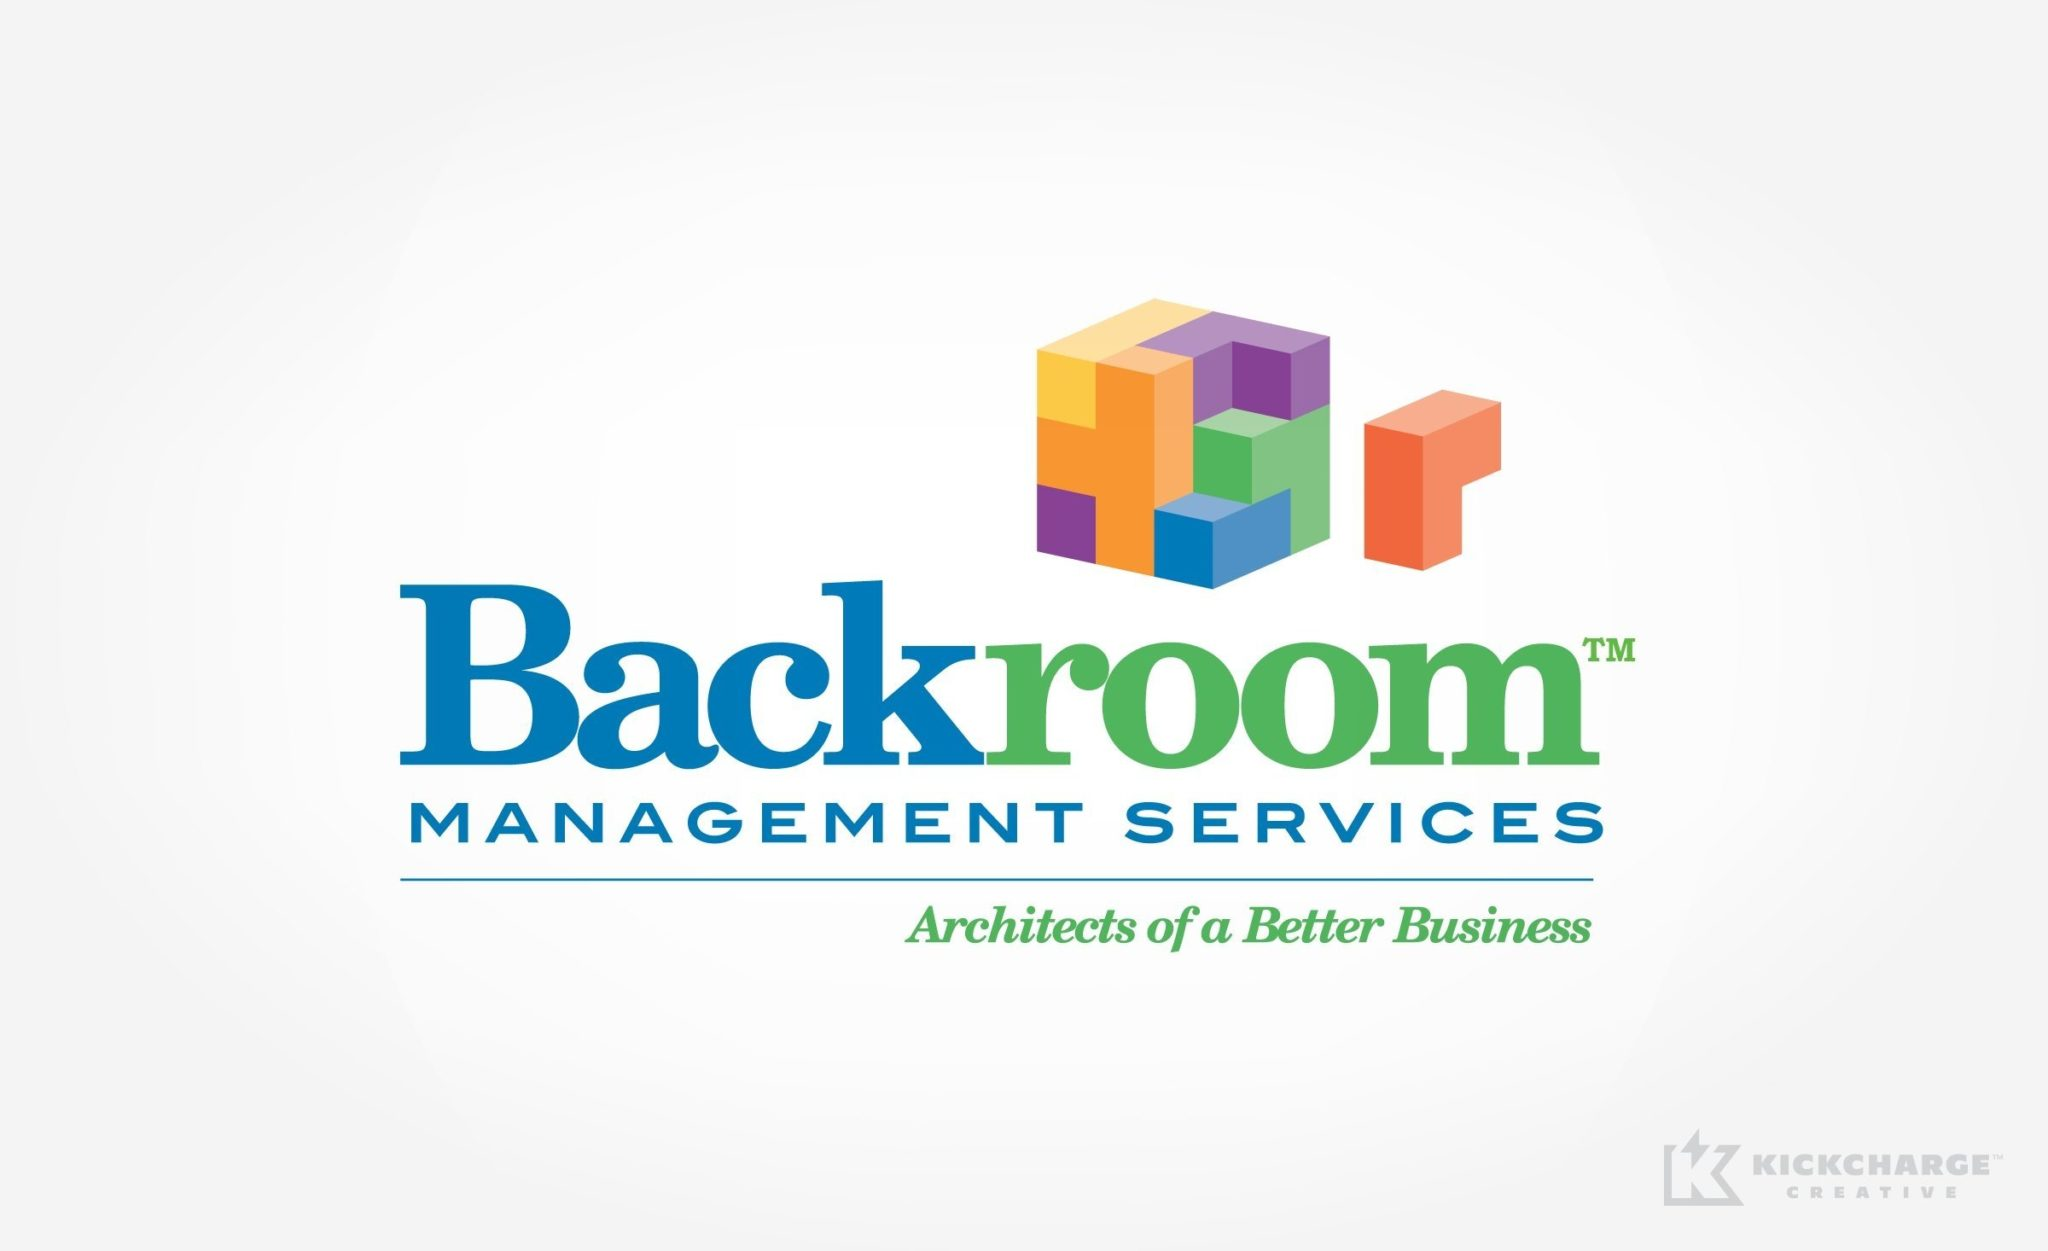 Backroom Management Services